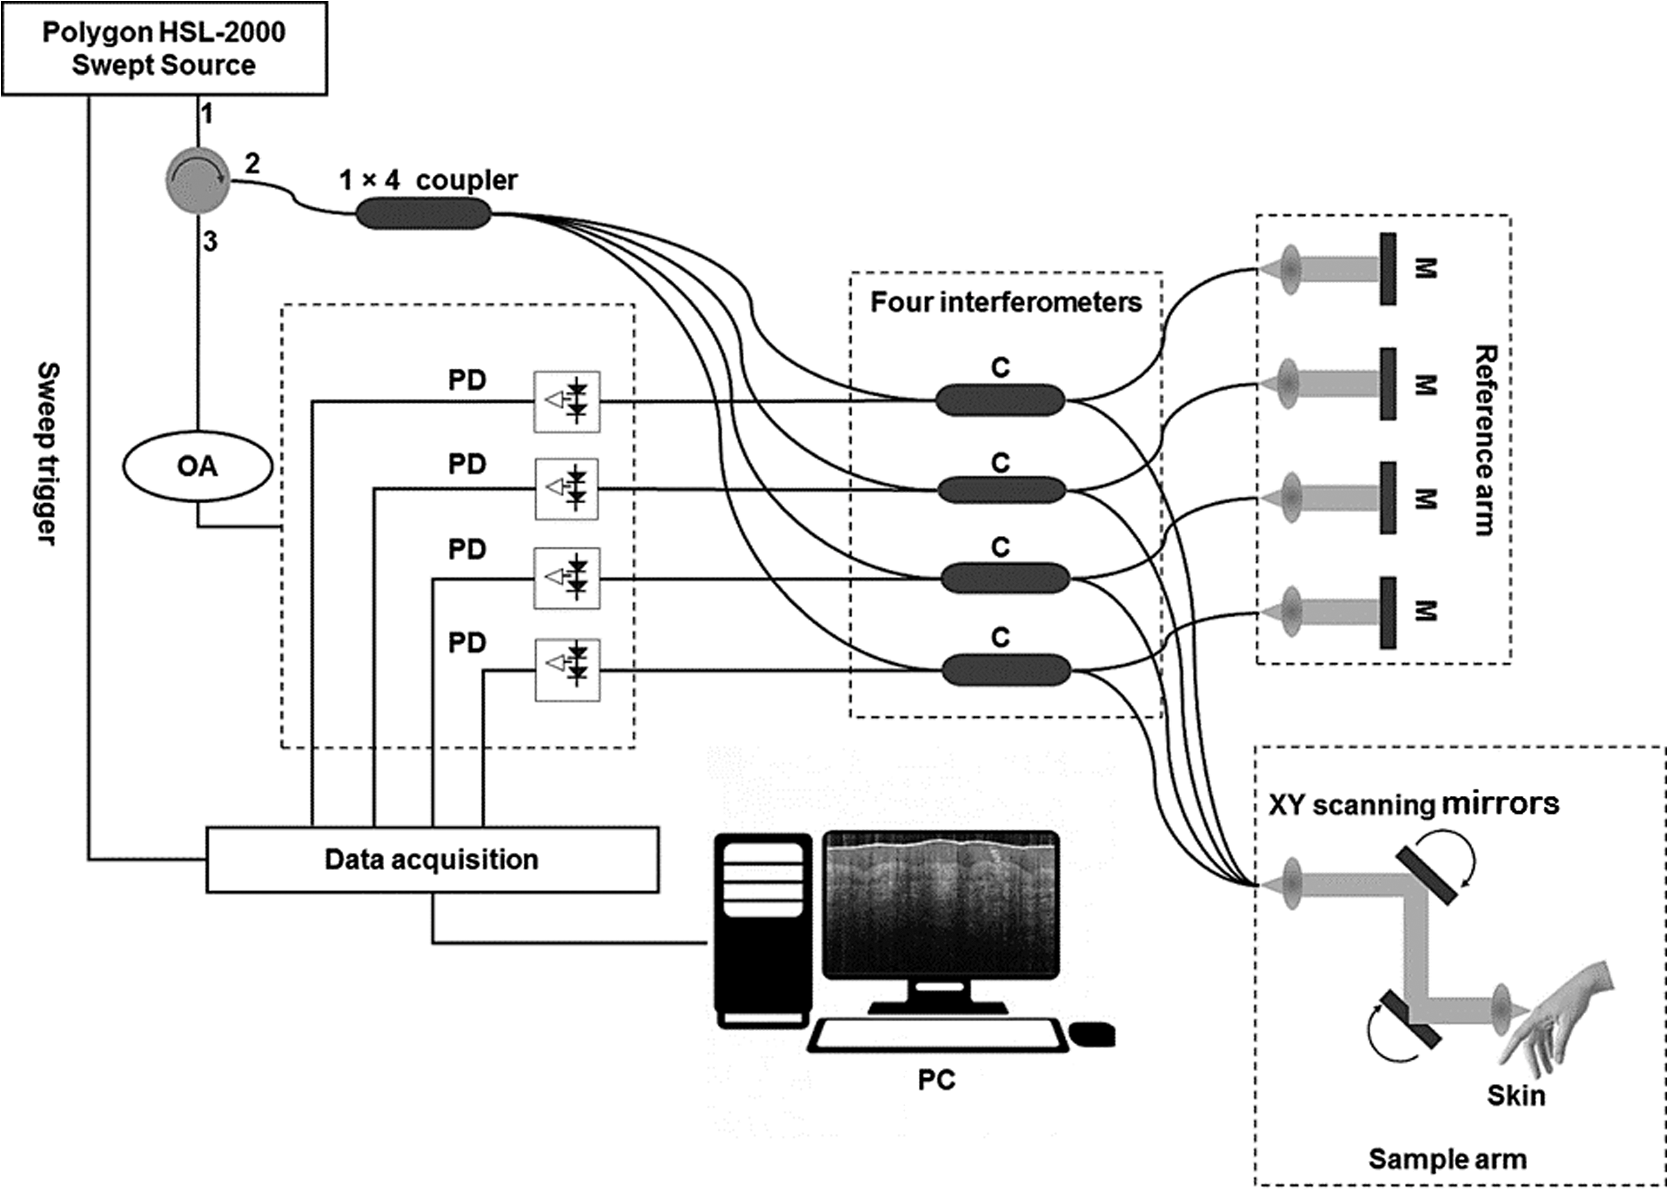 Learnable Despeckling Framework For Optical Coherence Tomography Images 2000 Rm 250 Engine Diagram Schematic Of The Multibeam Swept Source Oct M Mirror C Coupler Pd Photodetector And Oa Attenuator